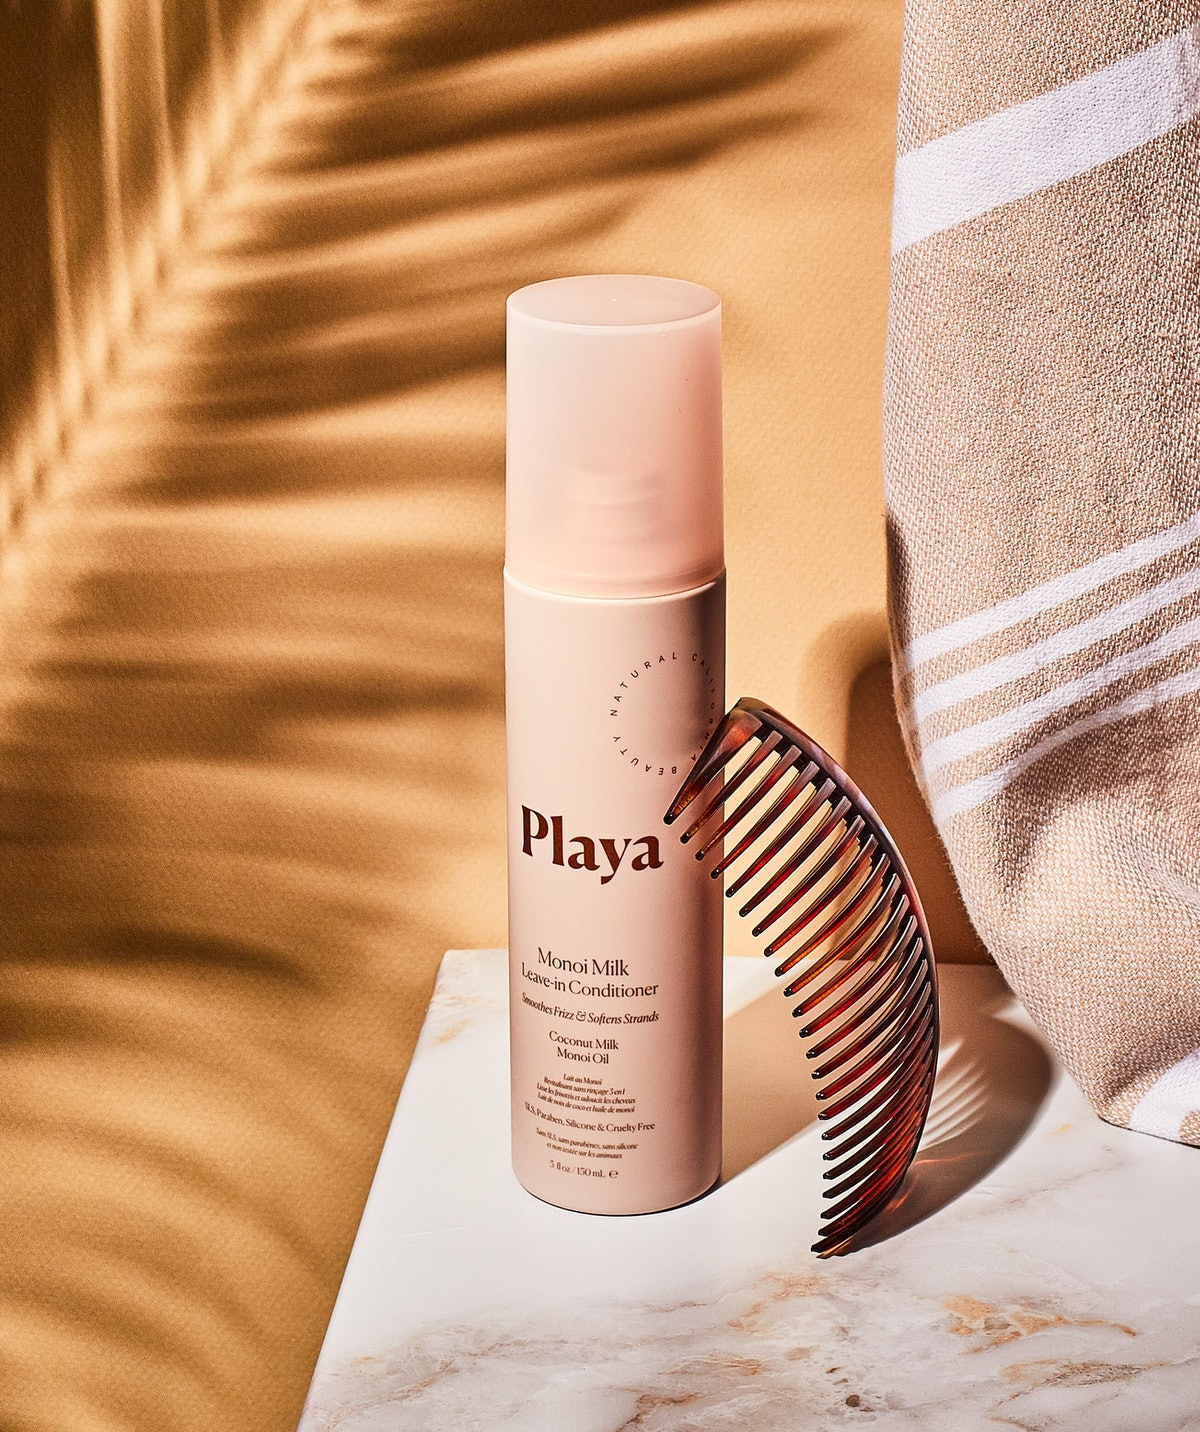 Playa's leave-in conditioner helps detangle, prime, and protect hair from heat.